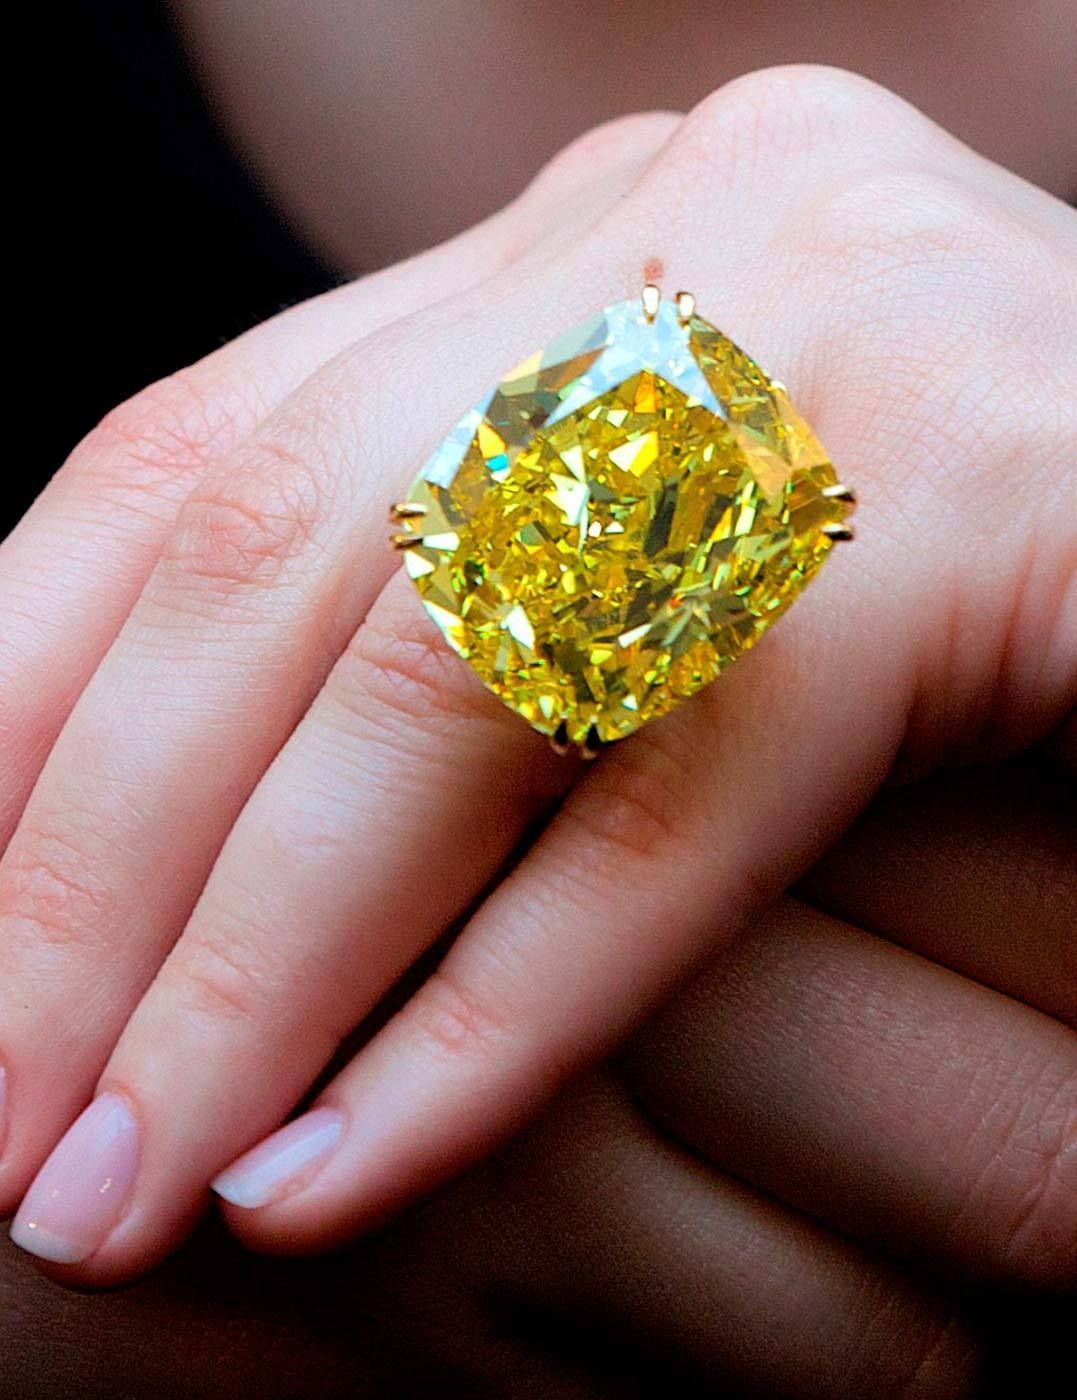 Rumoured to be Victoria Beckham's new ring, lucky girl!